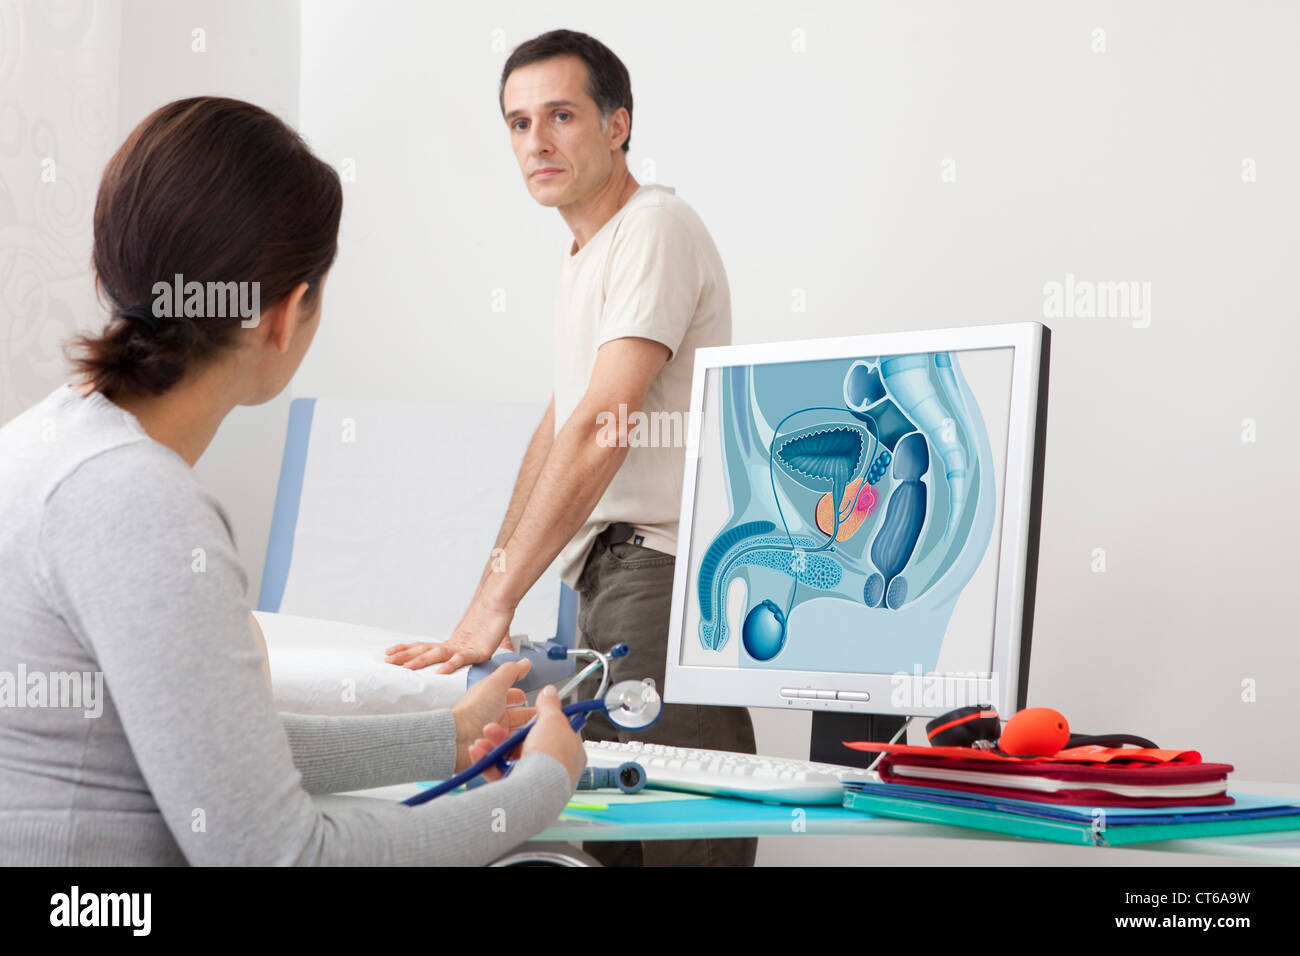 CANCER CONSULTATION MAN - Stock Image